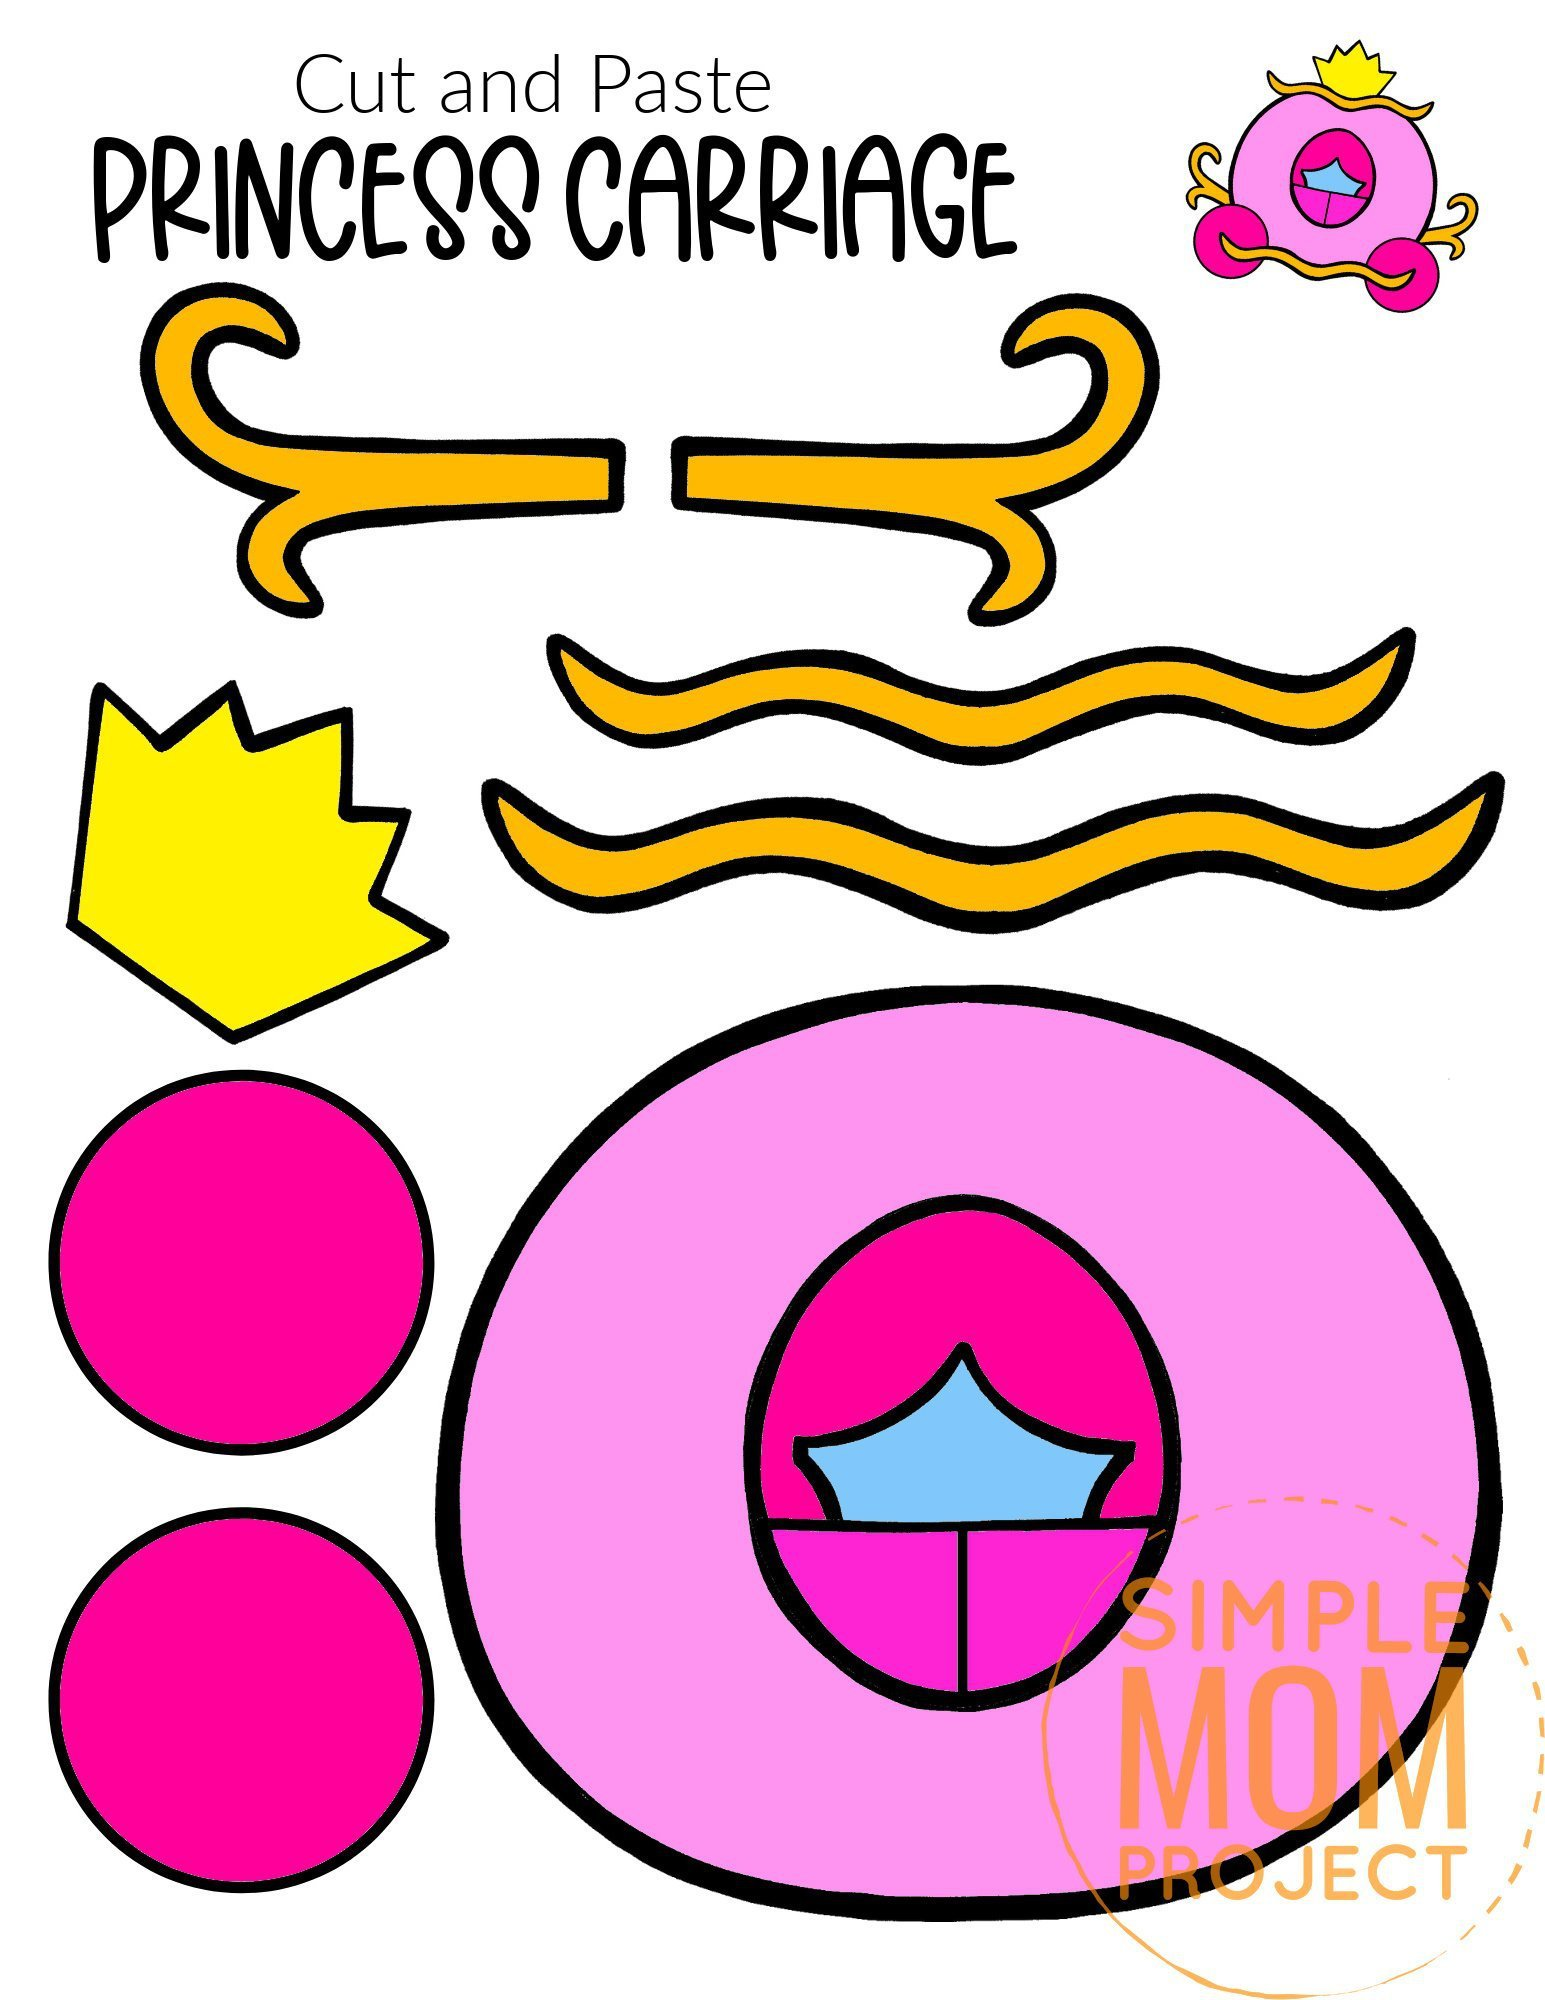 Free Printable Cut and Paste Princess Carriage Craft Template Craft for kids, preschoolers and toddlers